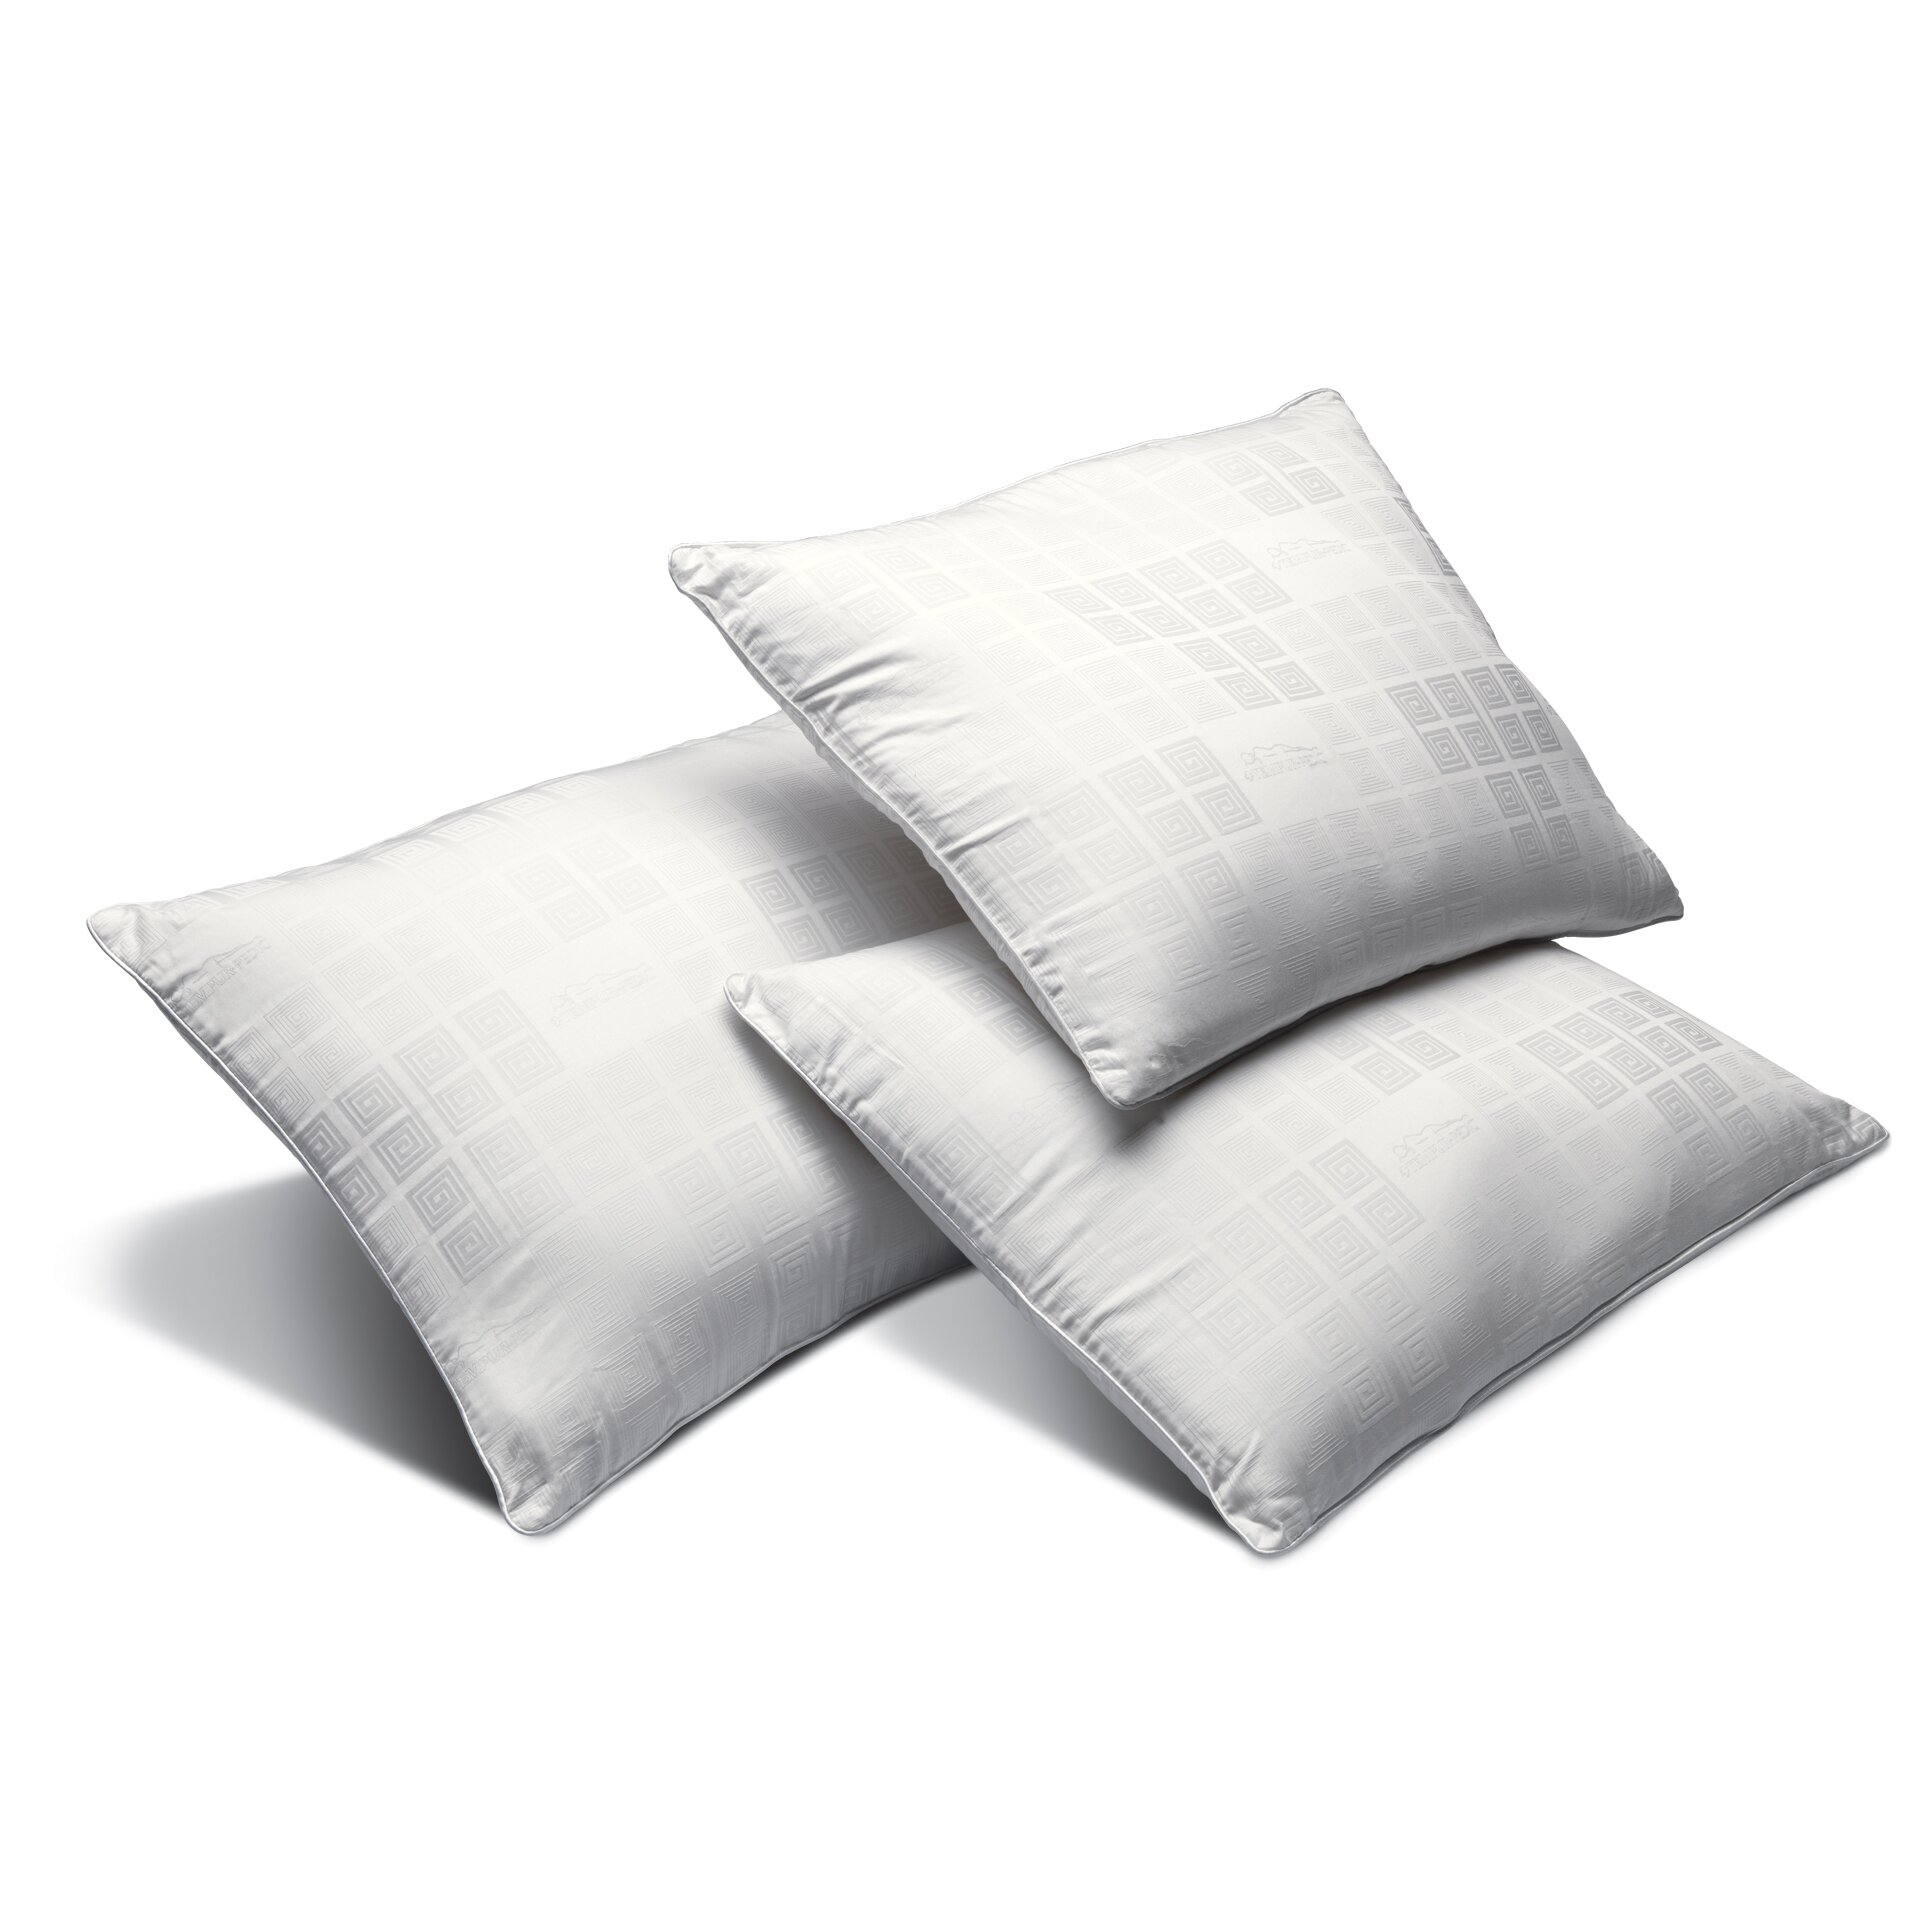 Tempur-Pedic Tempur-Traditional Pillow : Tempur-Pedic Soft Traditional Memory Foam Standard Pillow Wayfair